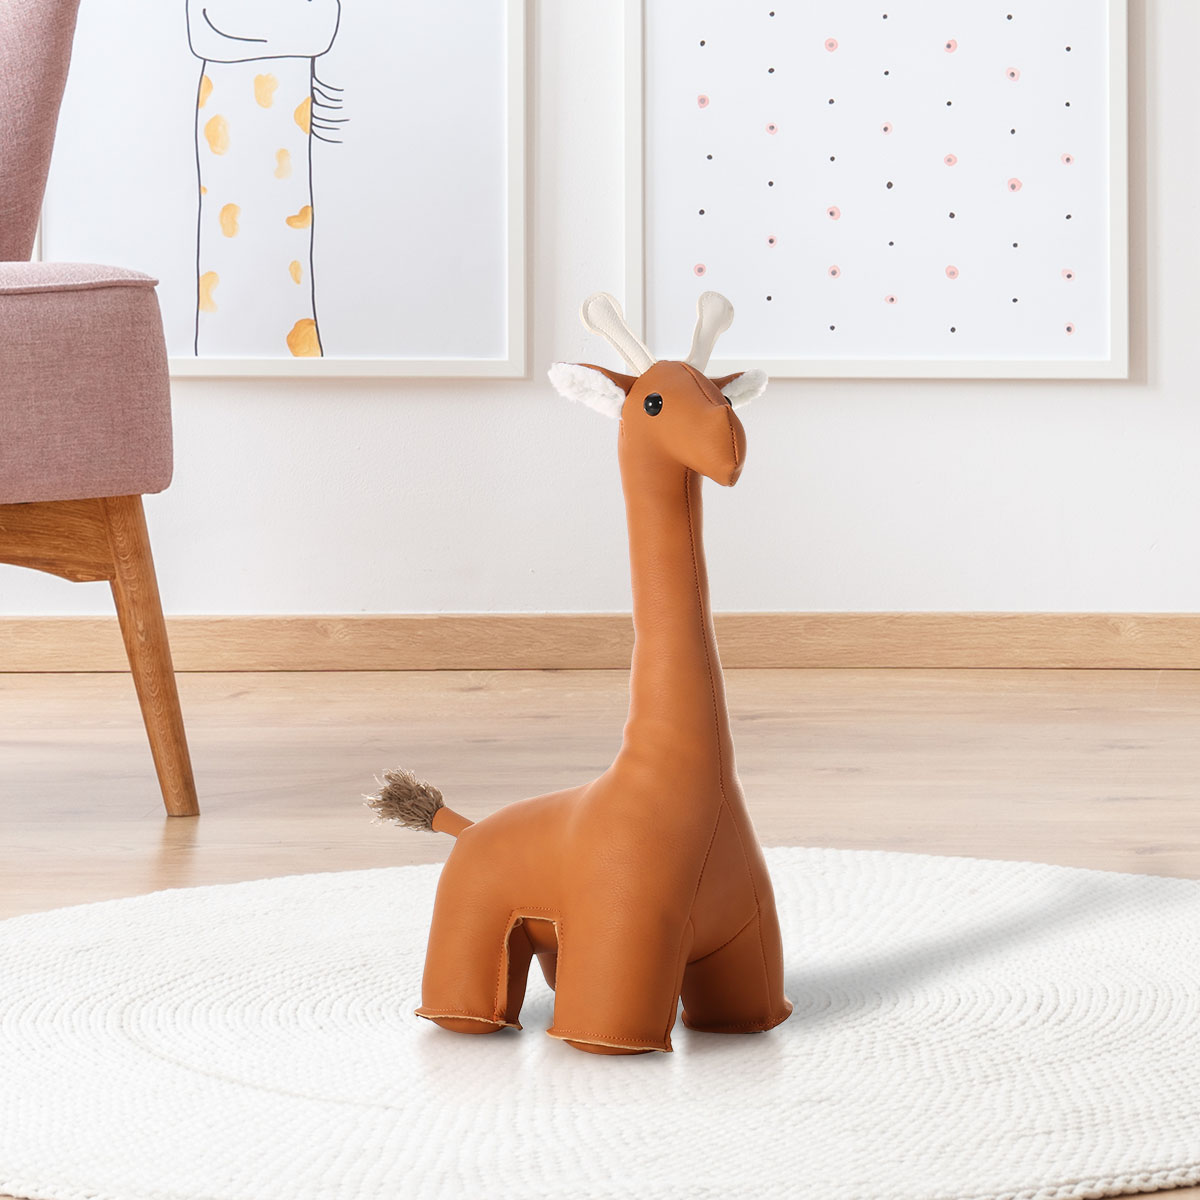 Tooarts Leather Giraffe Bookend Animal Gift Home Decoration Cute Animal Toy Bedroom Bathroom Door Stopper Animal